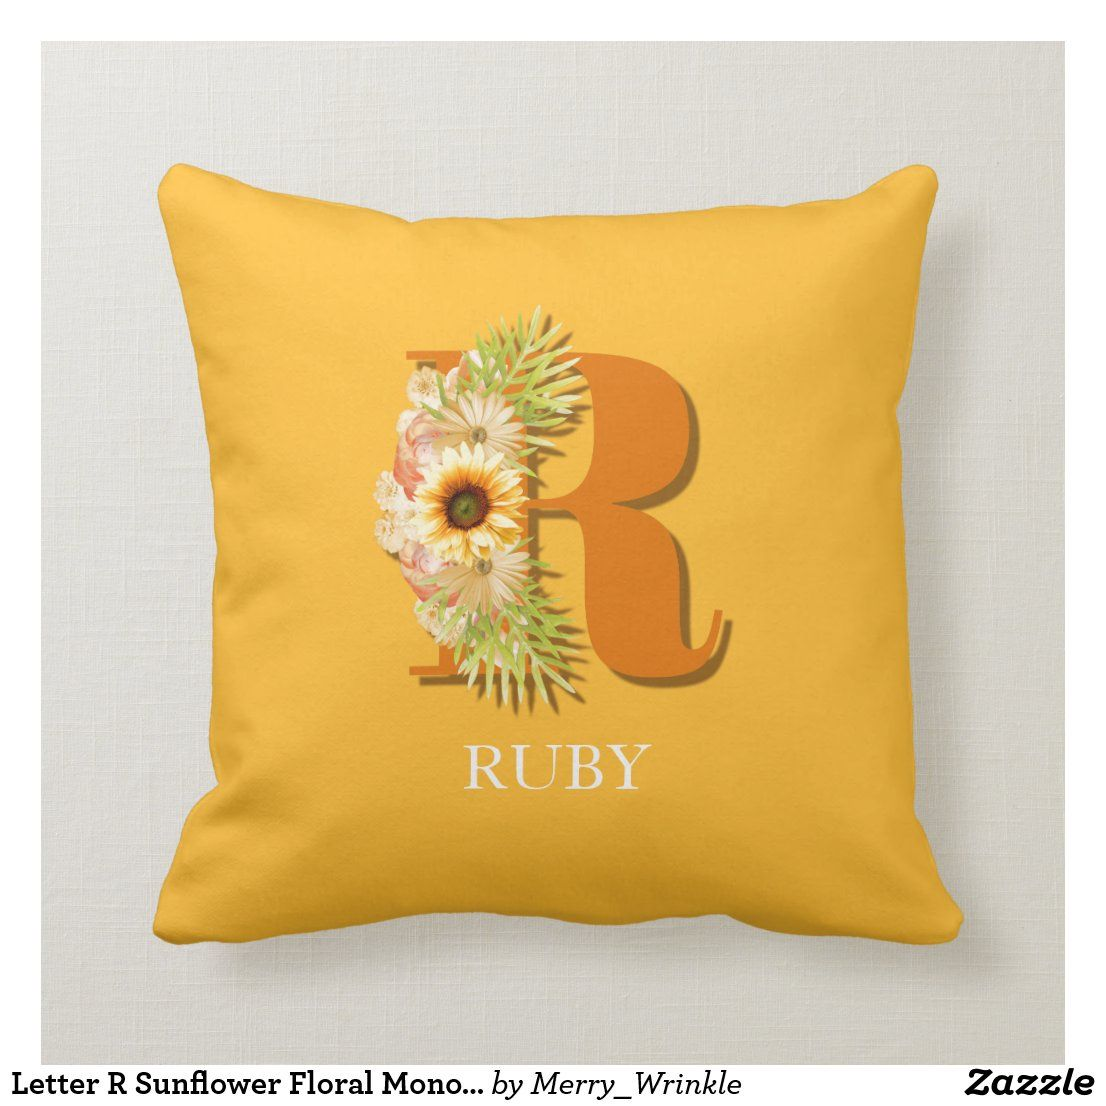 Letter R Sunflower Floral Monogram with Name Throw Pillow ...